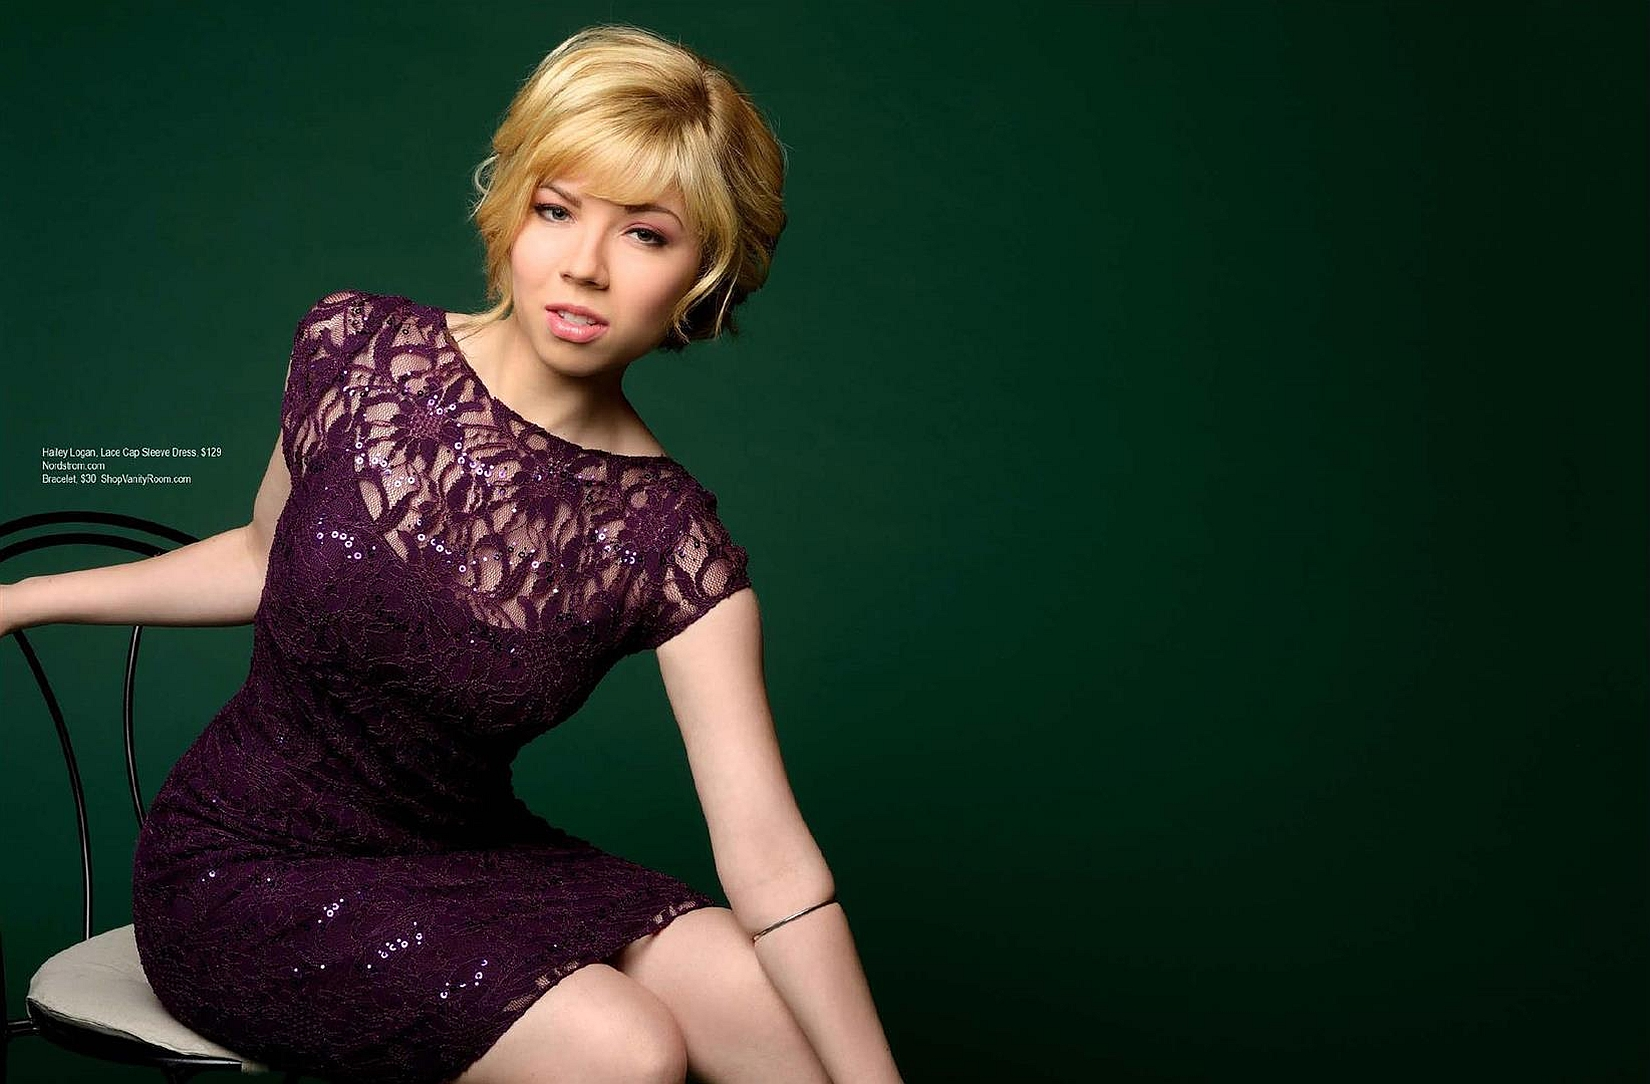 1650x1084 - Jennette McCurdy Wallpapers 3